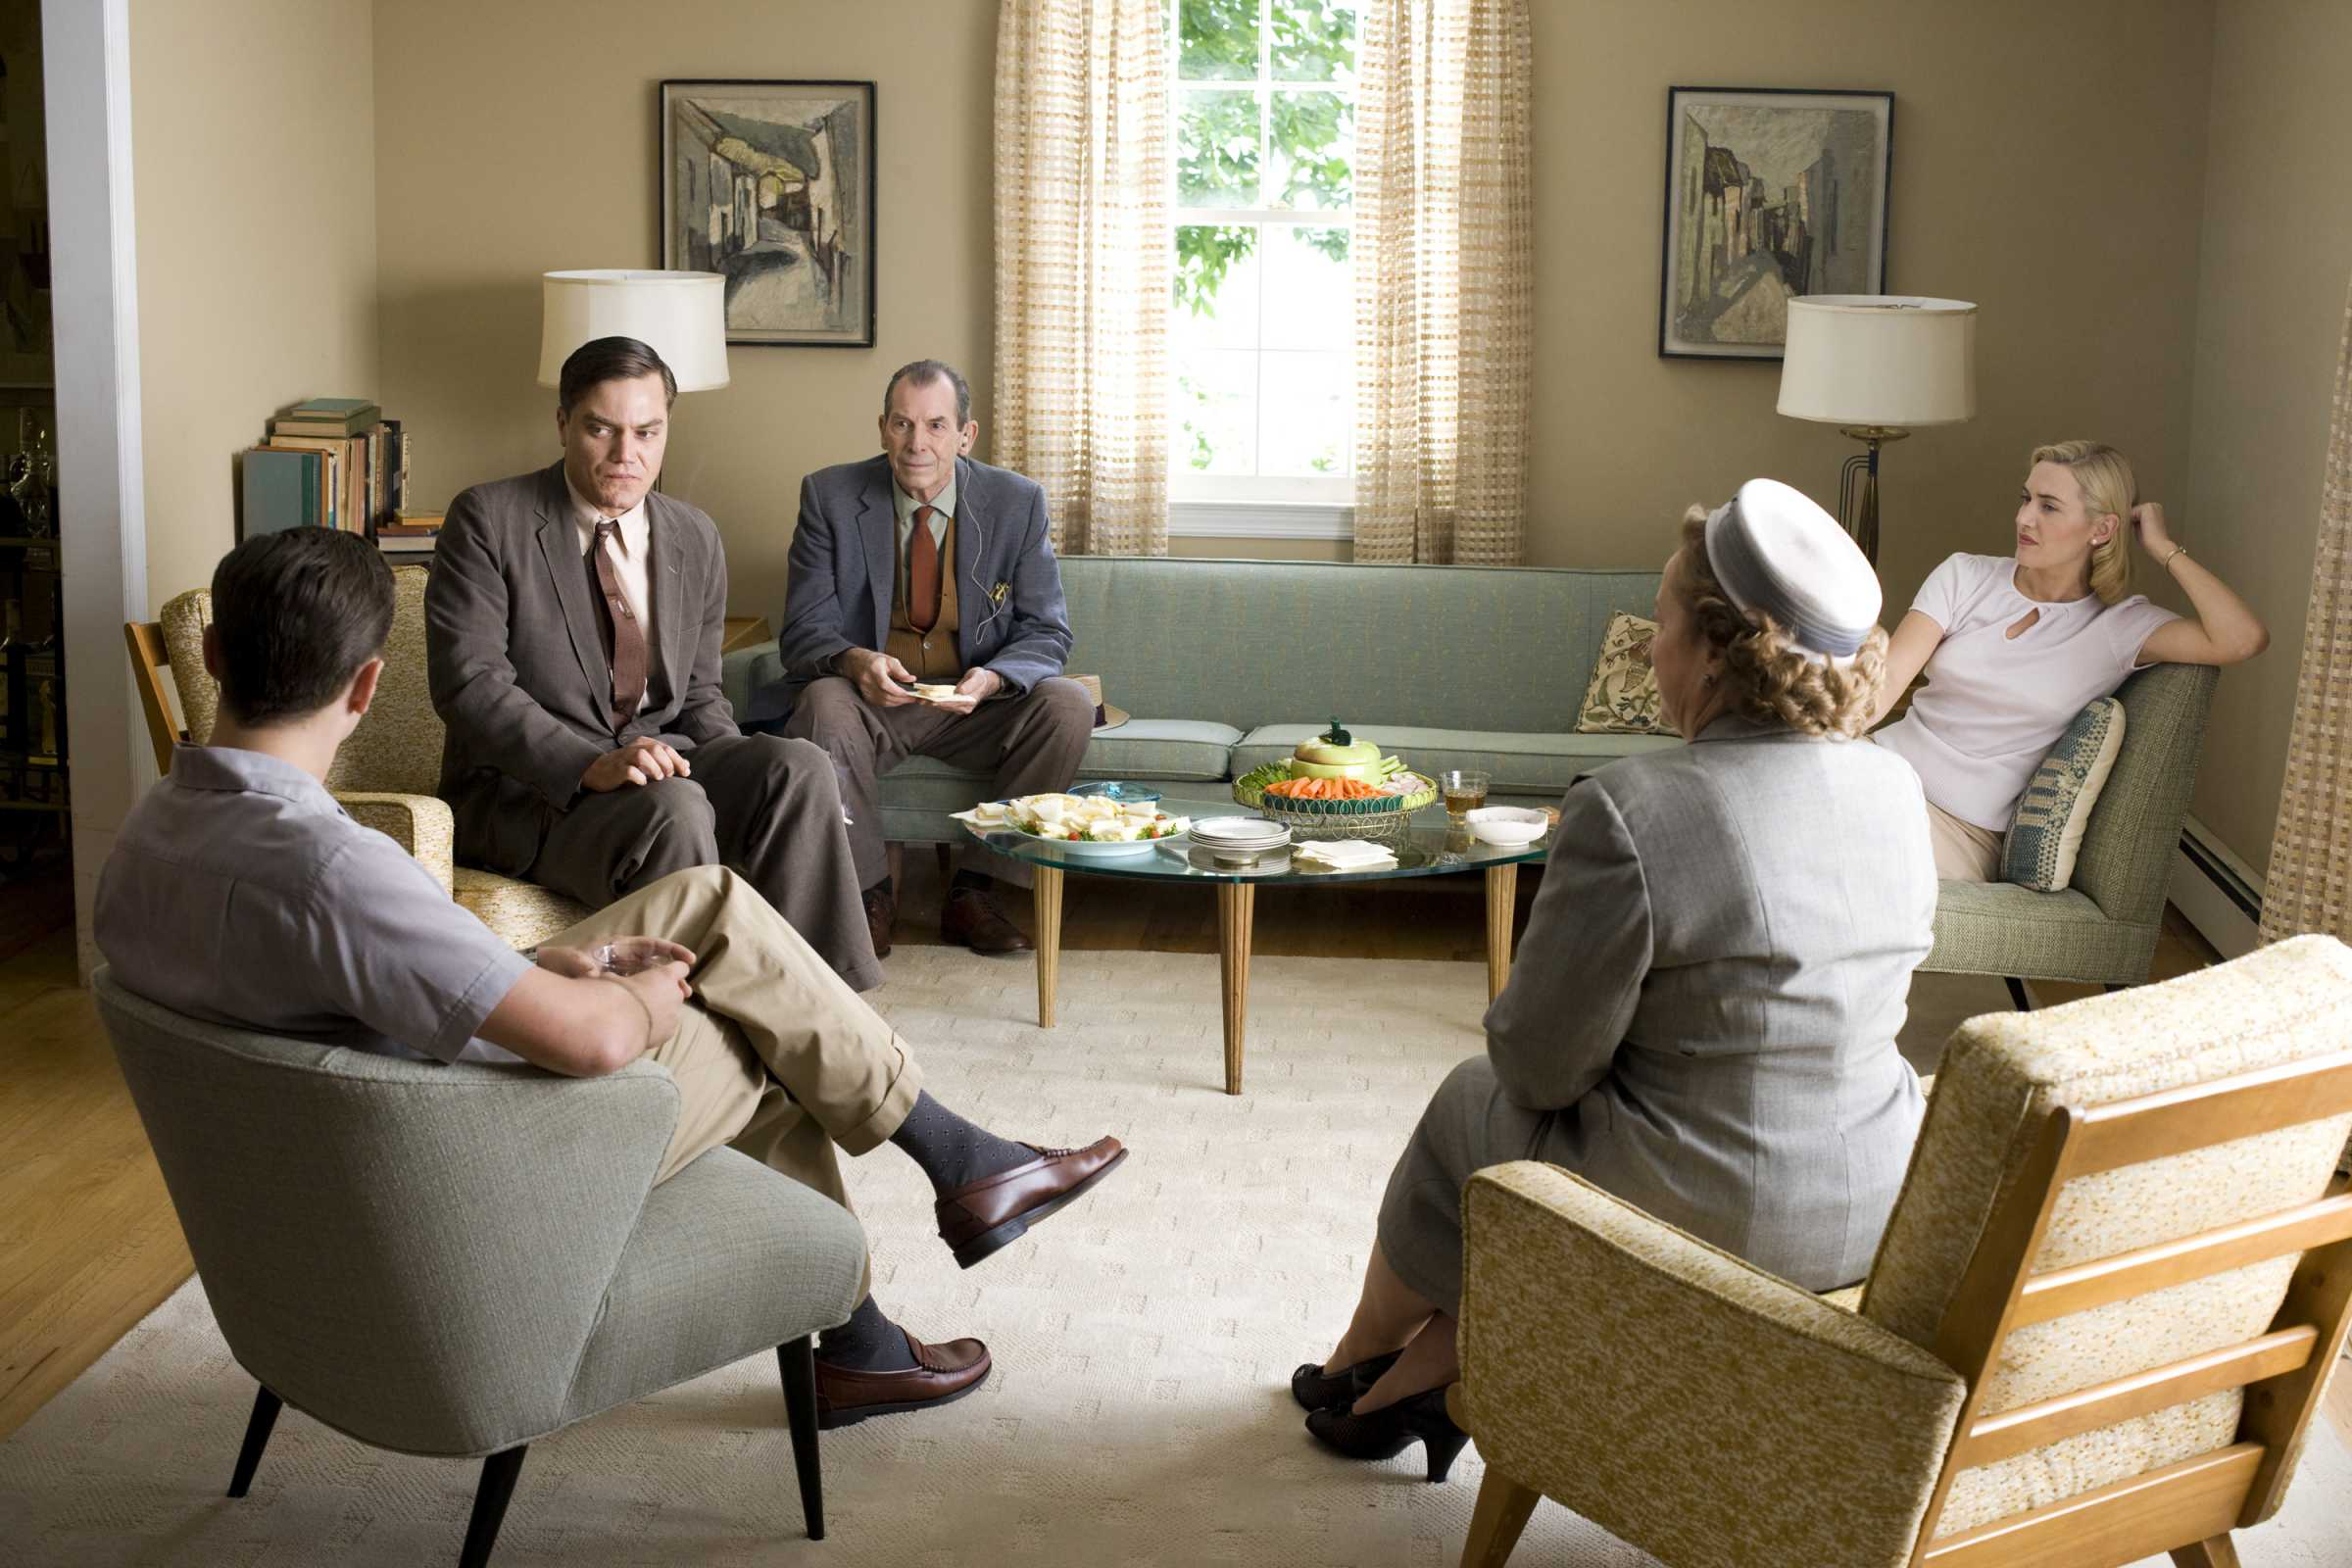 revolutionary road - photo #15